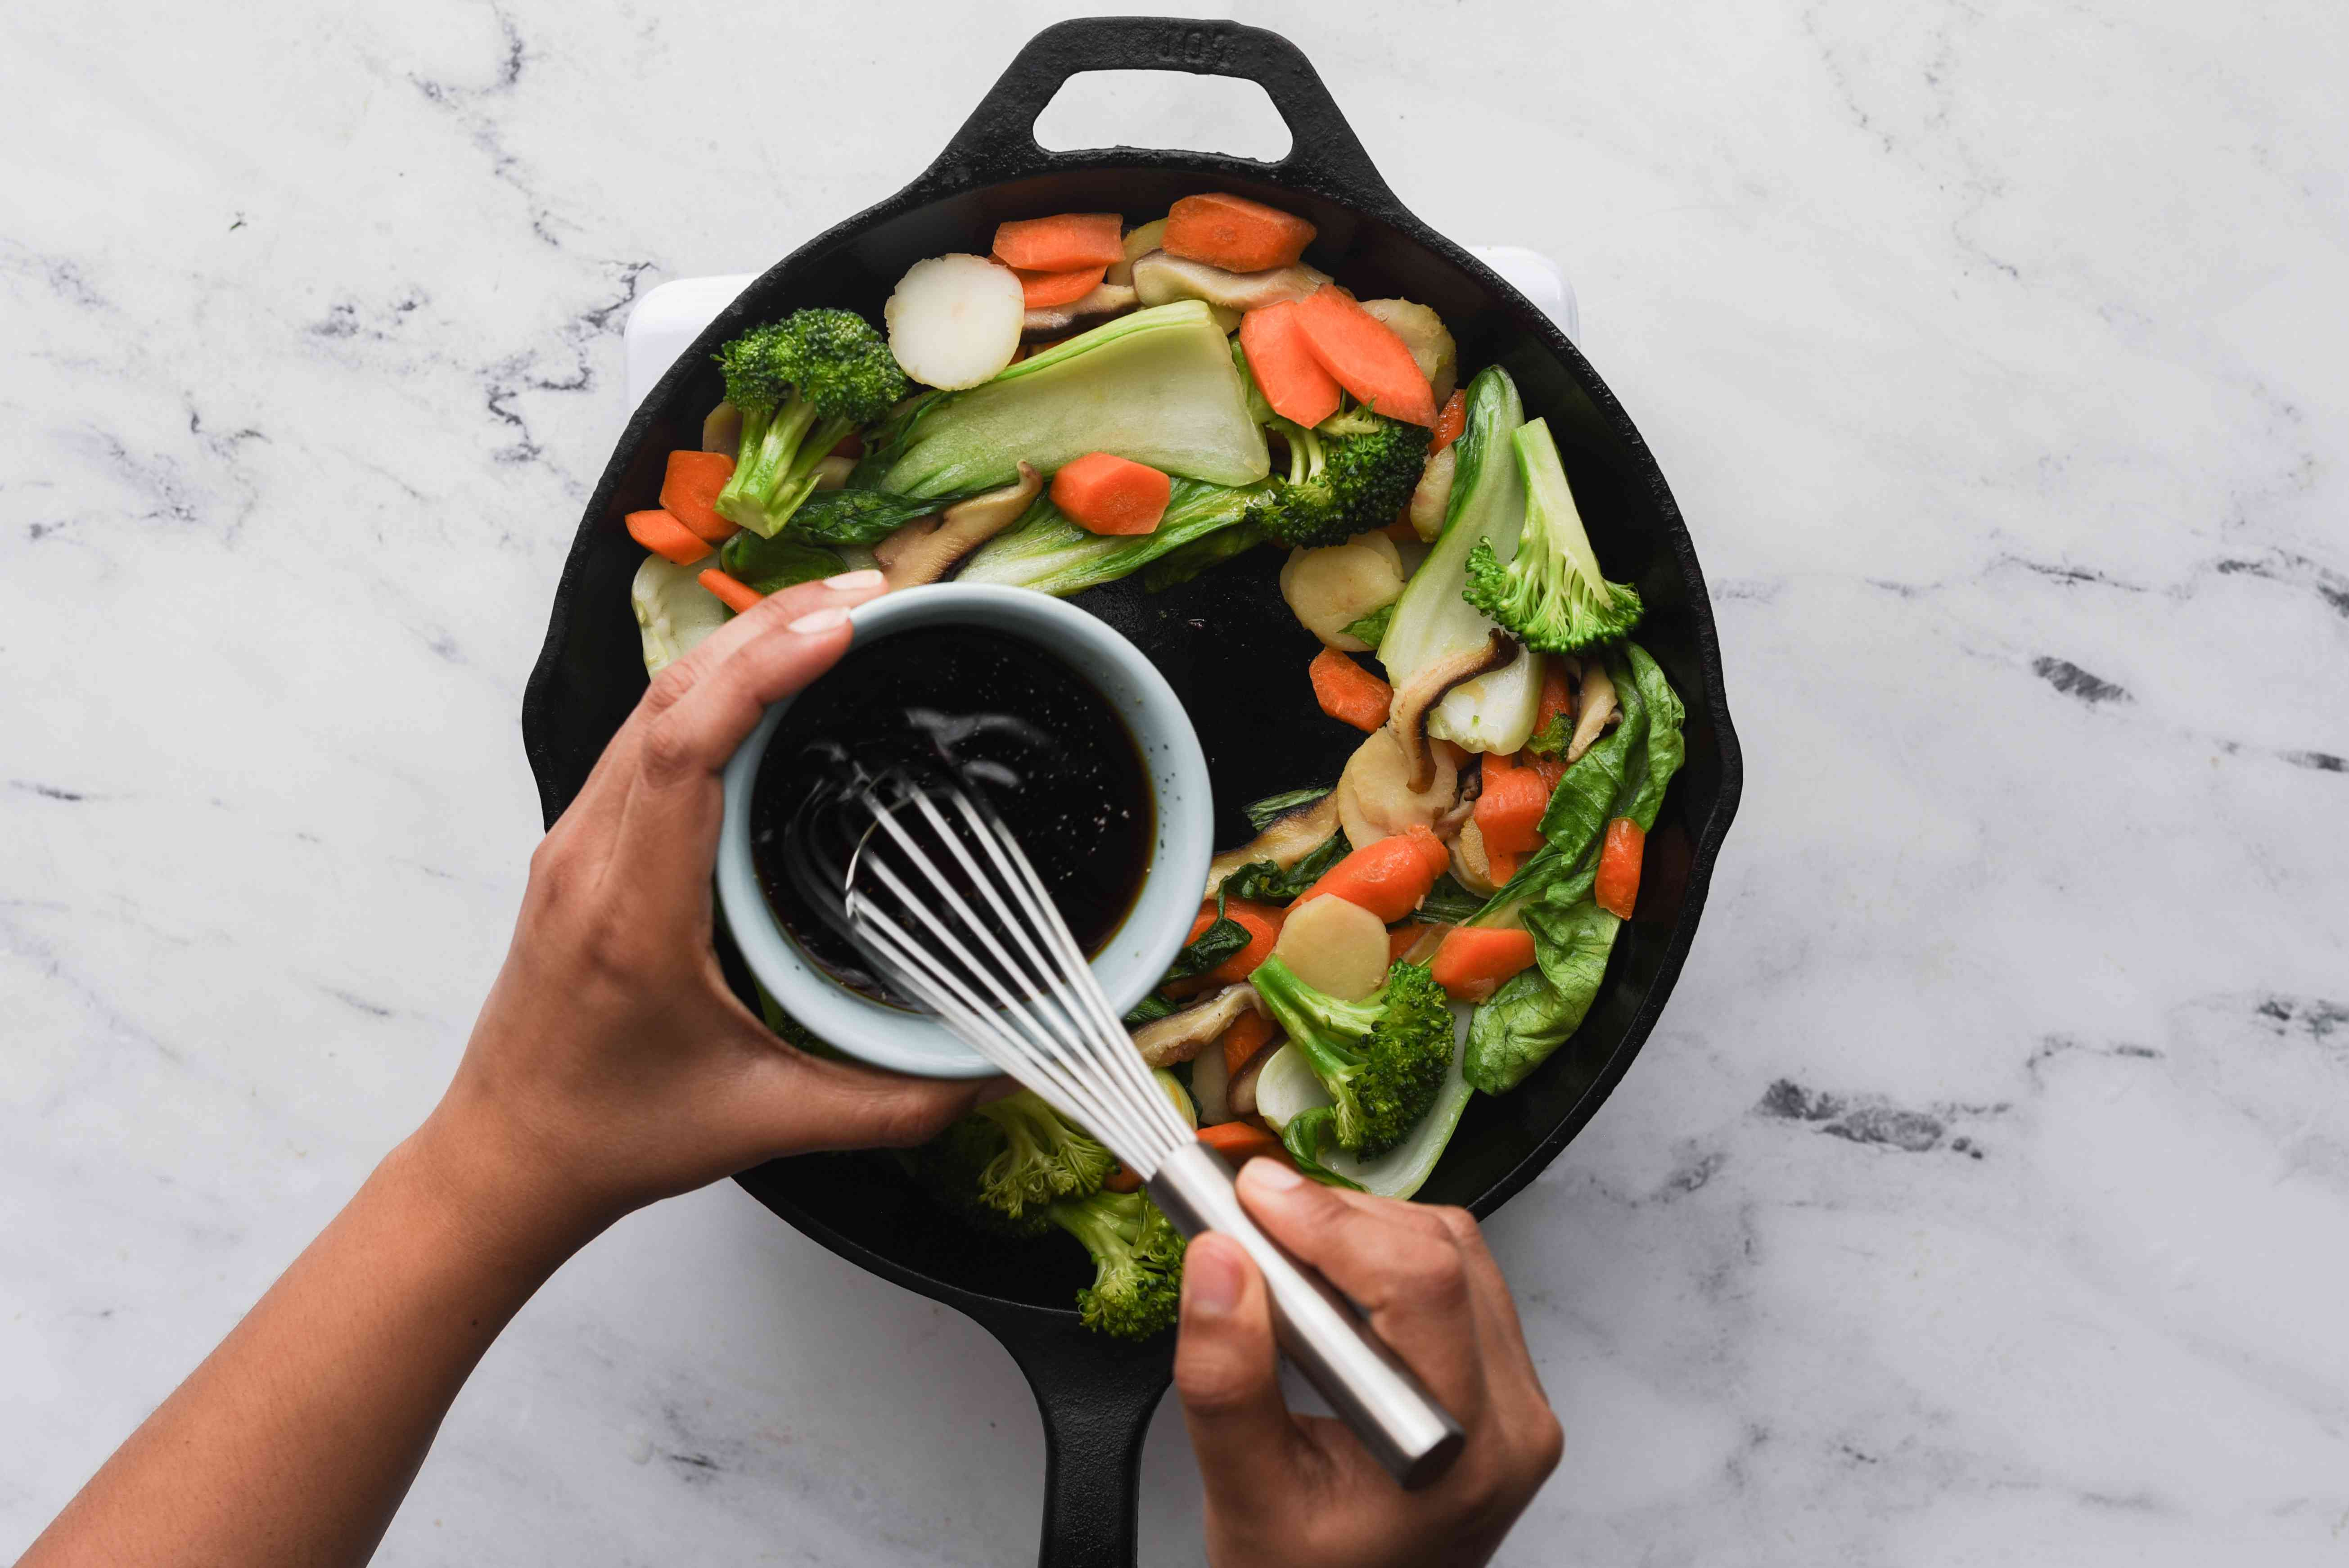 pour sauce into the skillet with the vegetables